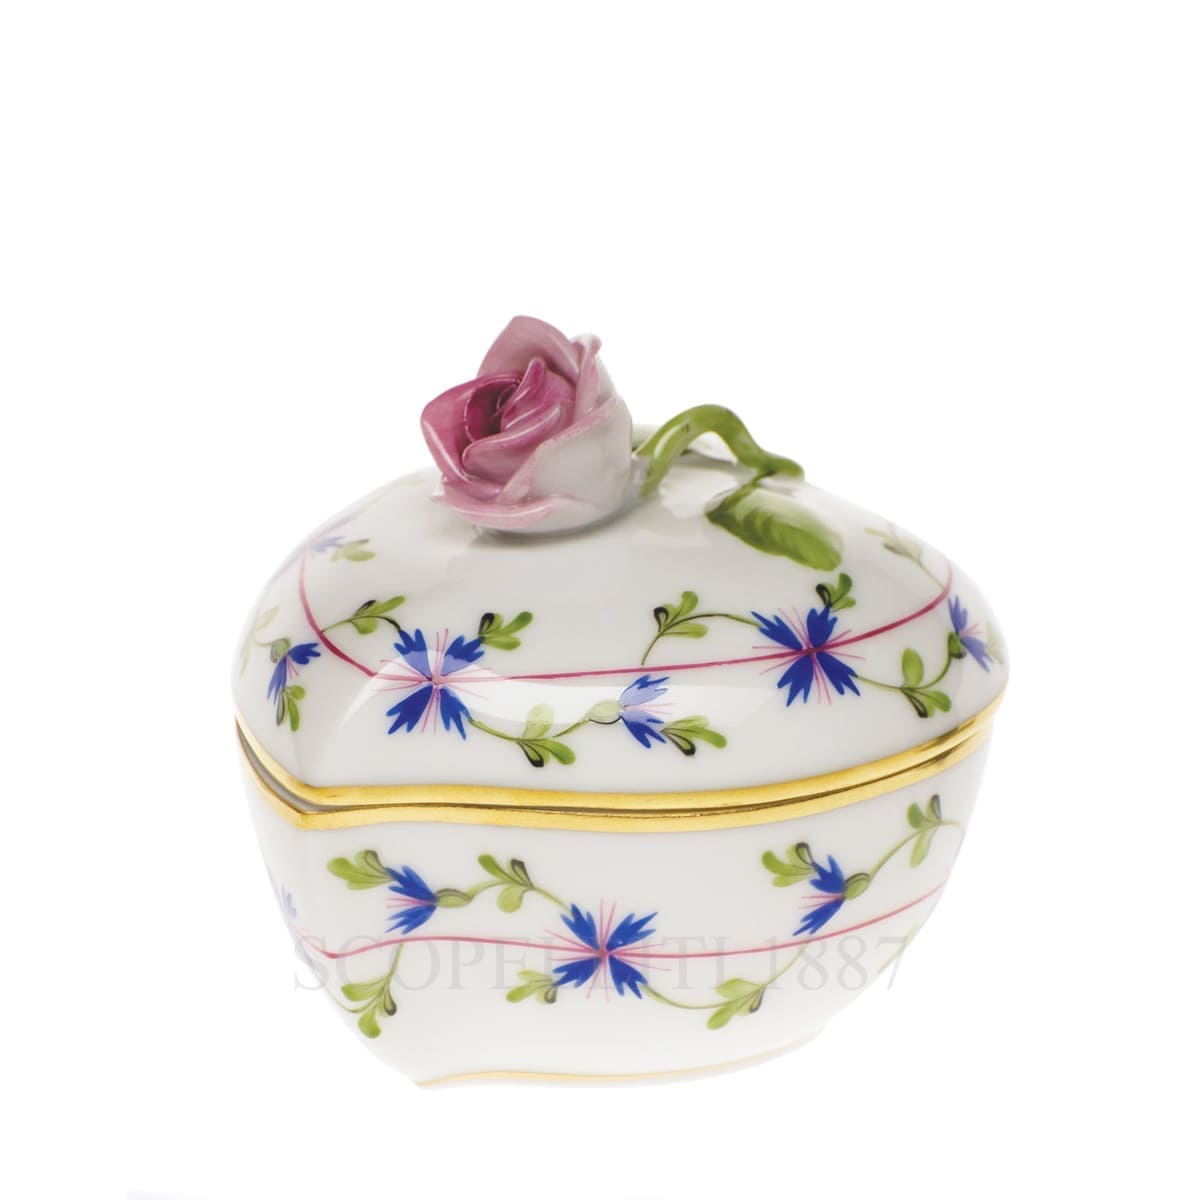 herend handpainted porcelain heart box with rose